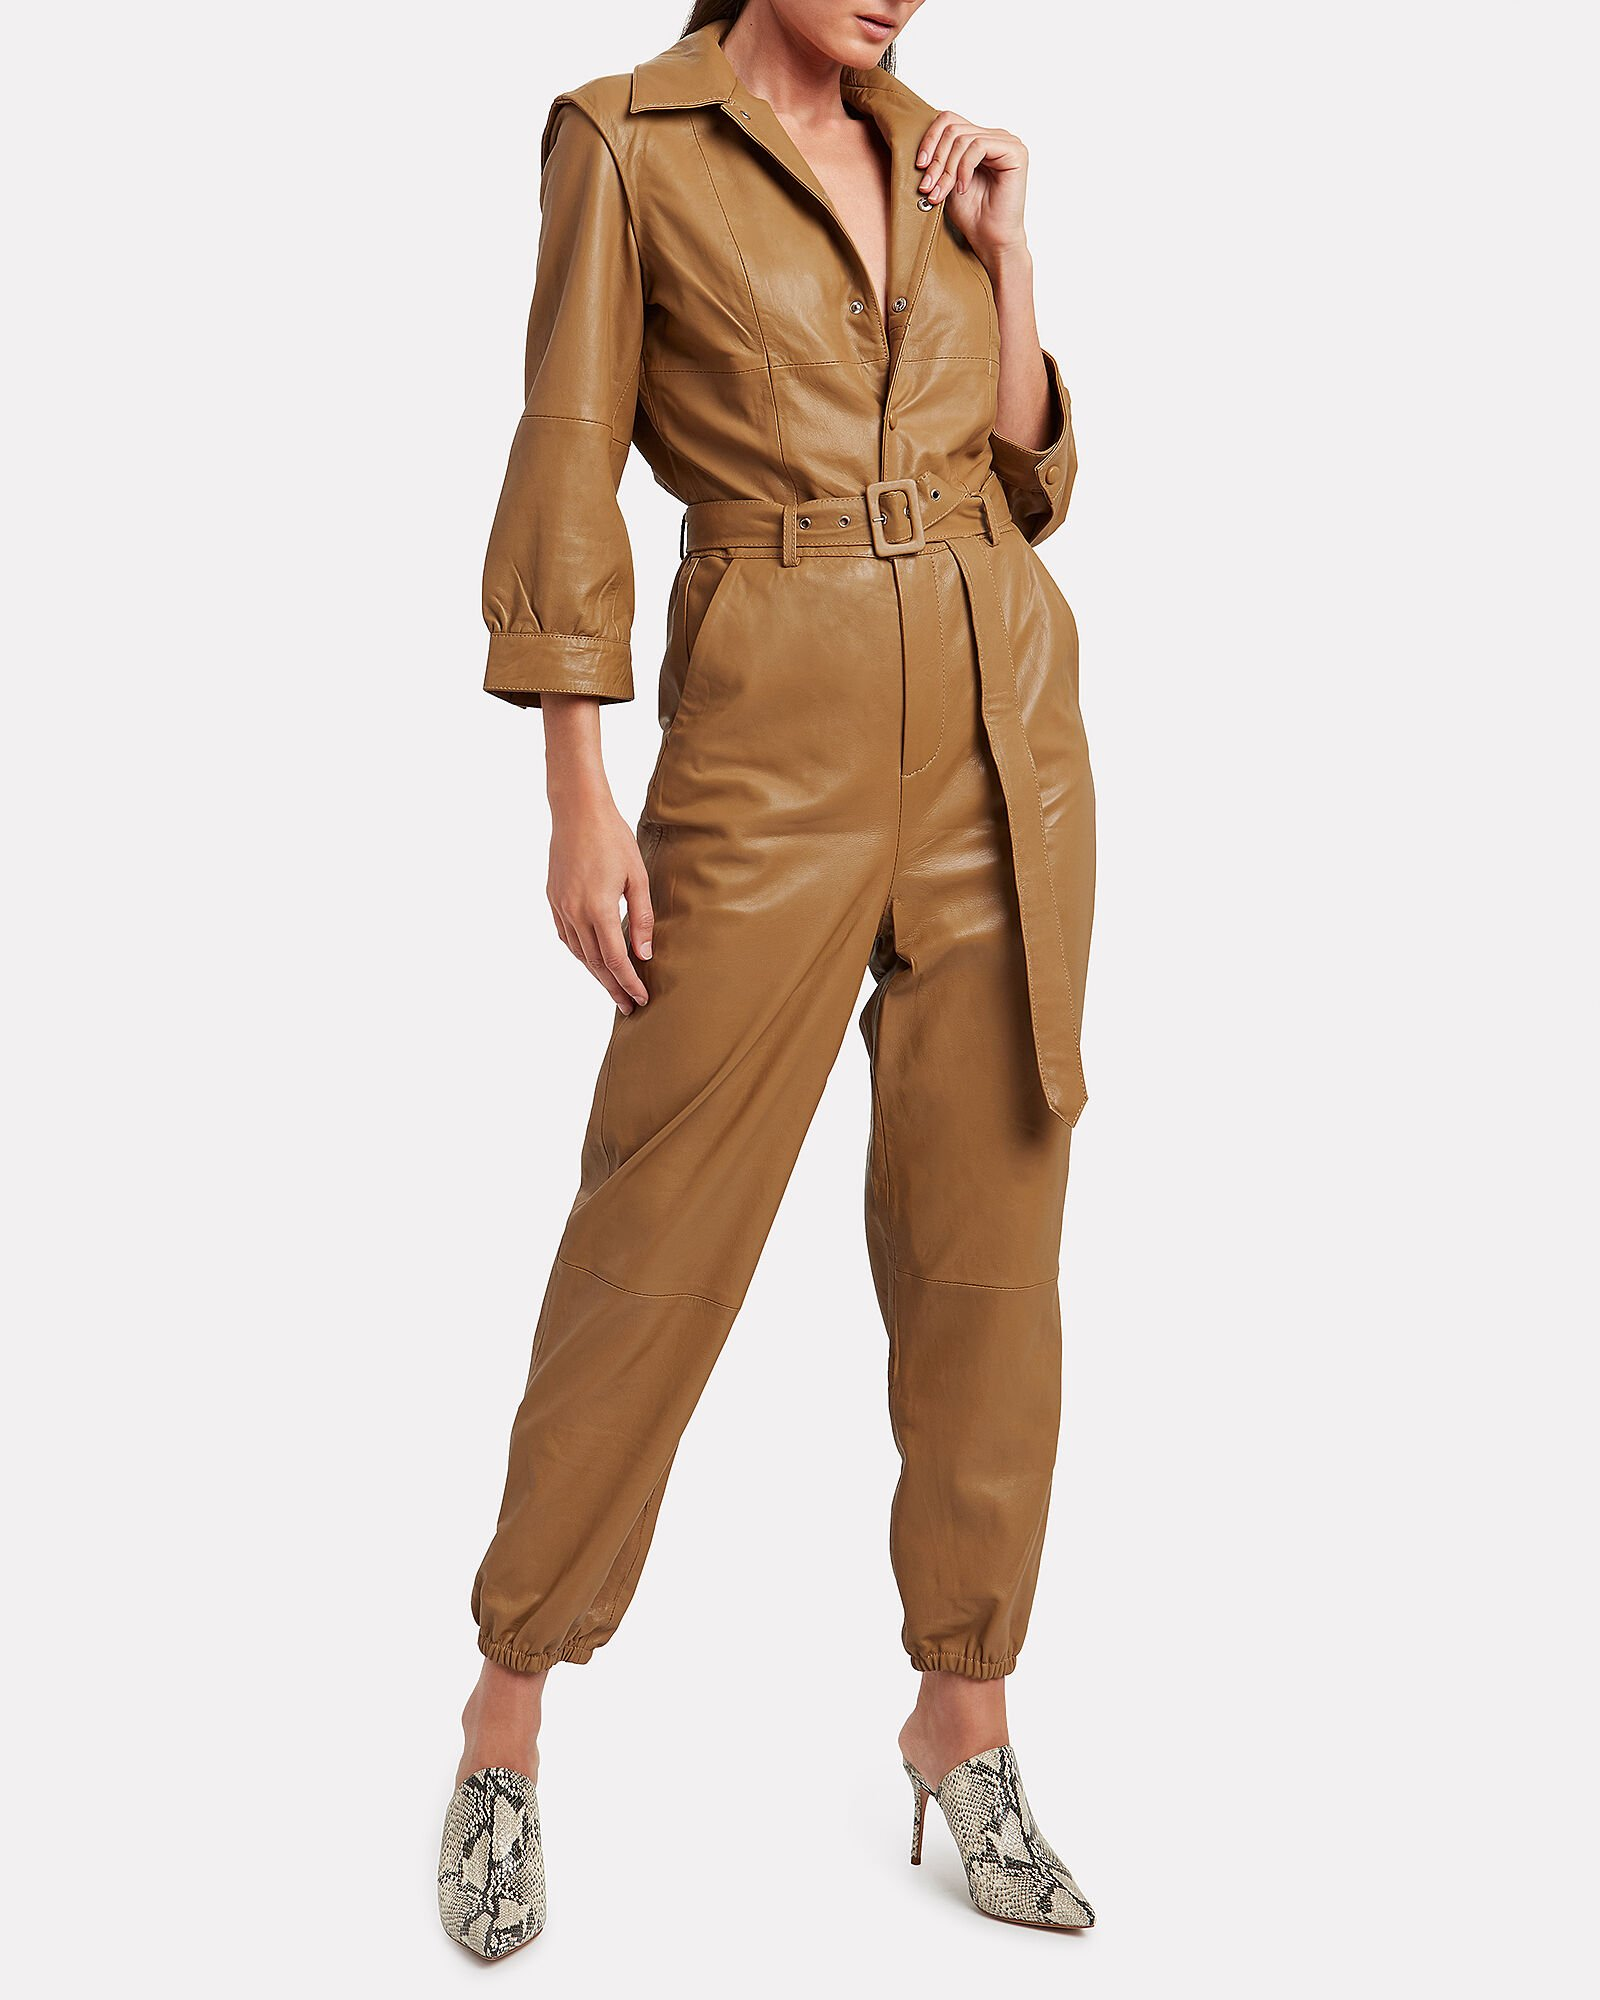 Iffi Leather Jumpsuit, BROWN, hi-res